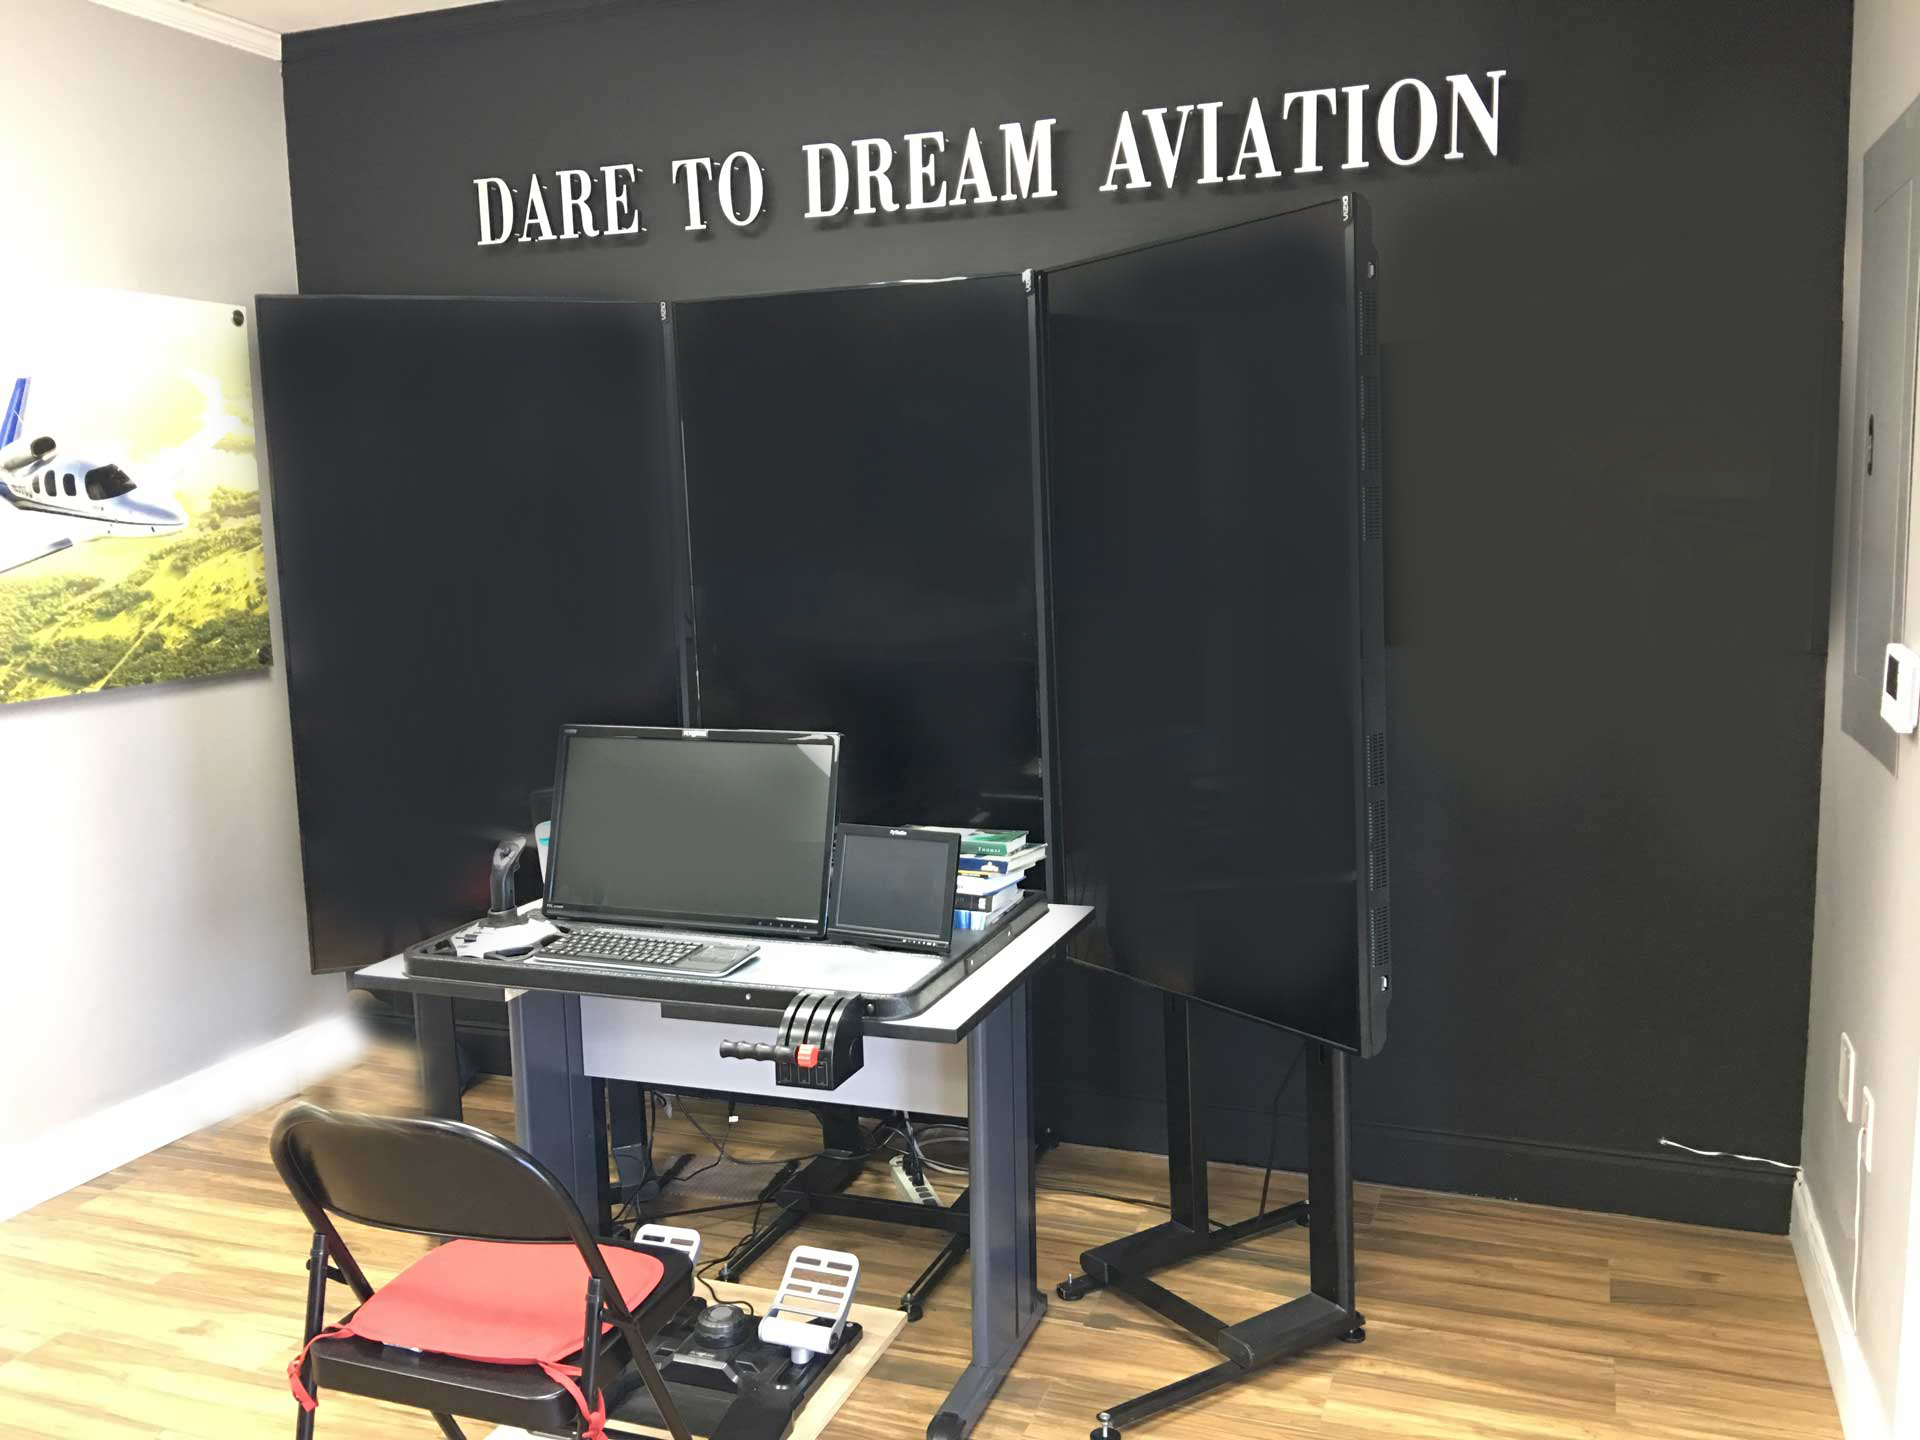 Dare to Dream Flight Simulator